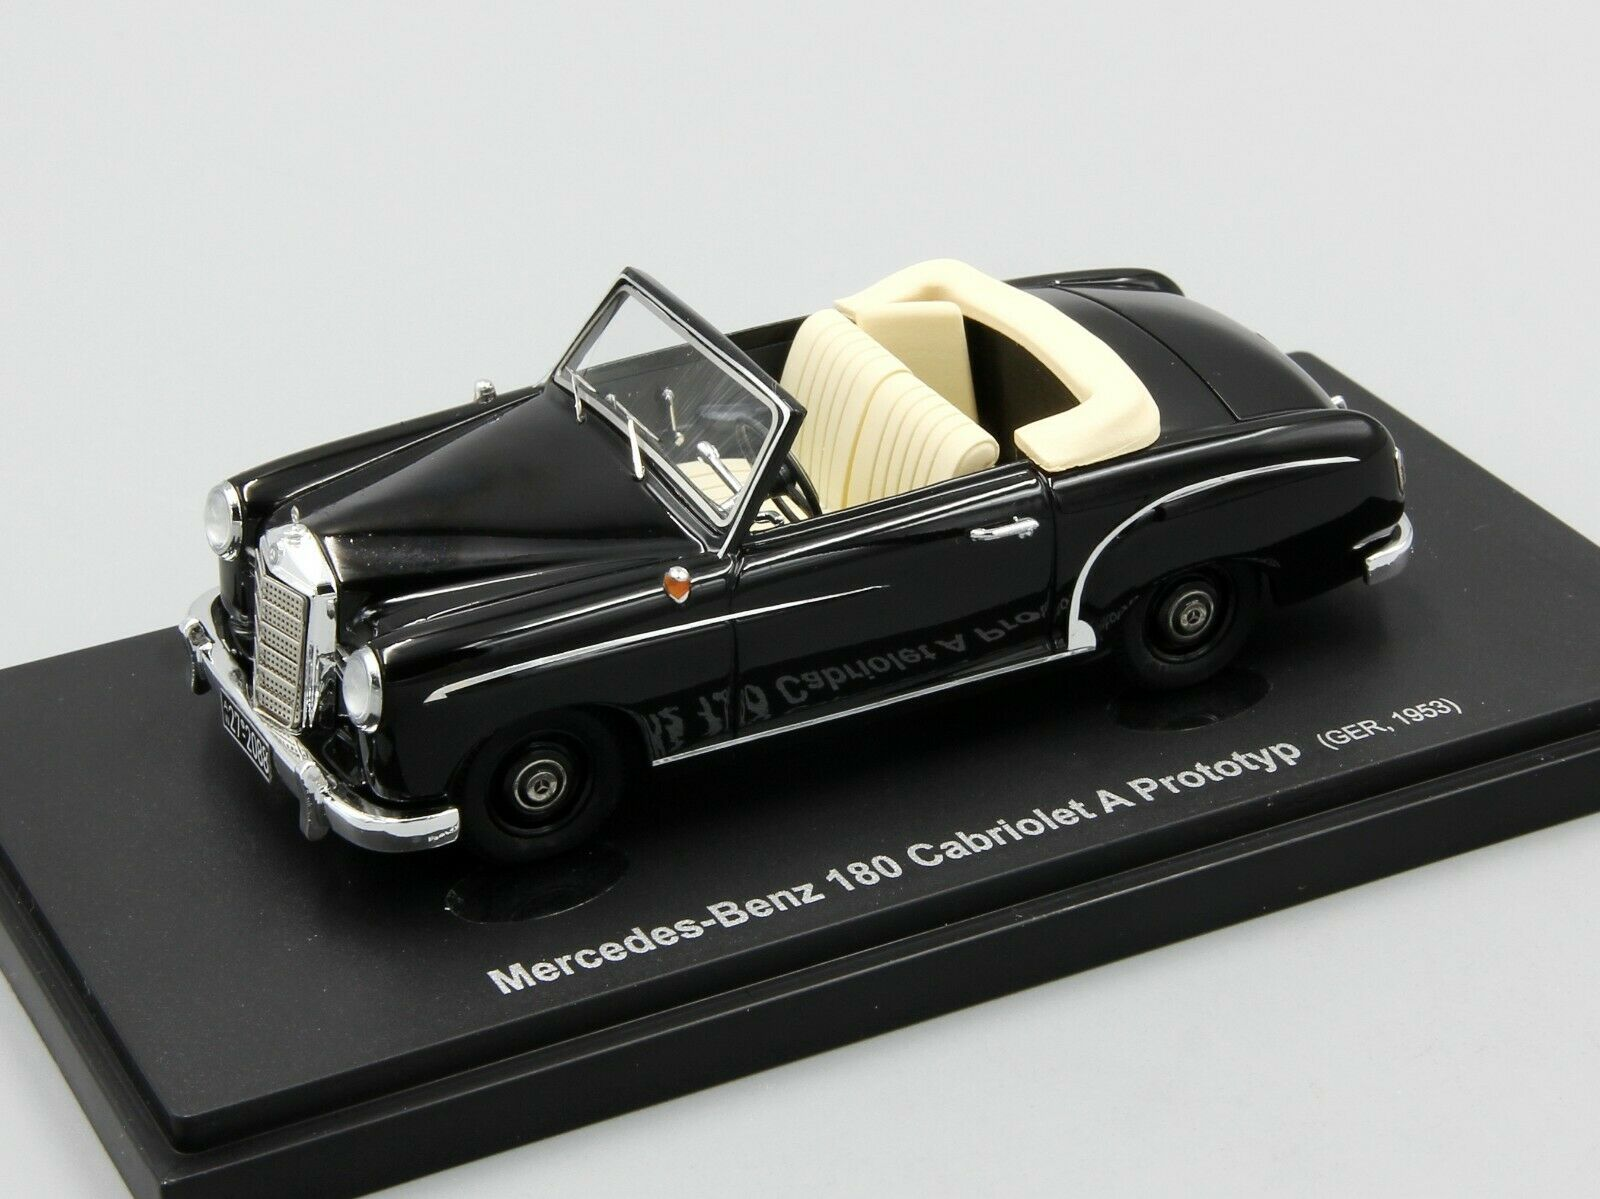 Autocult 1 43 Mercedes Mercedes Mercedes 180 Cabriolet A Predotyp, black, Germany, 1953 381